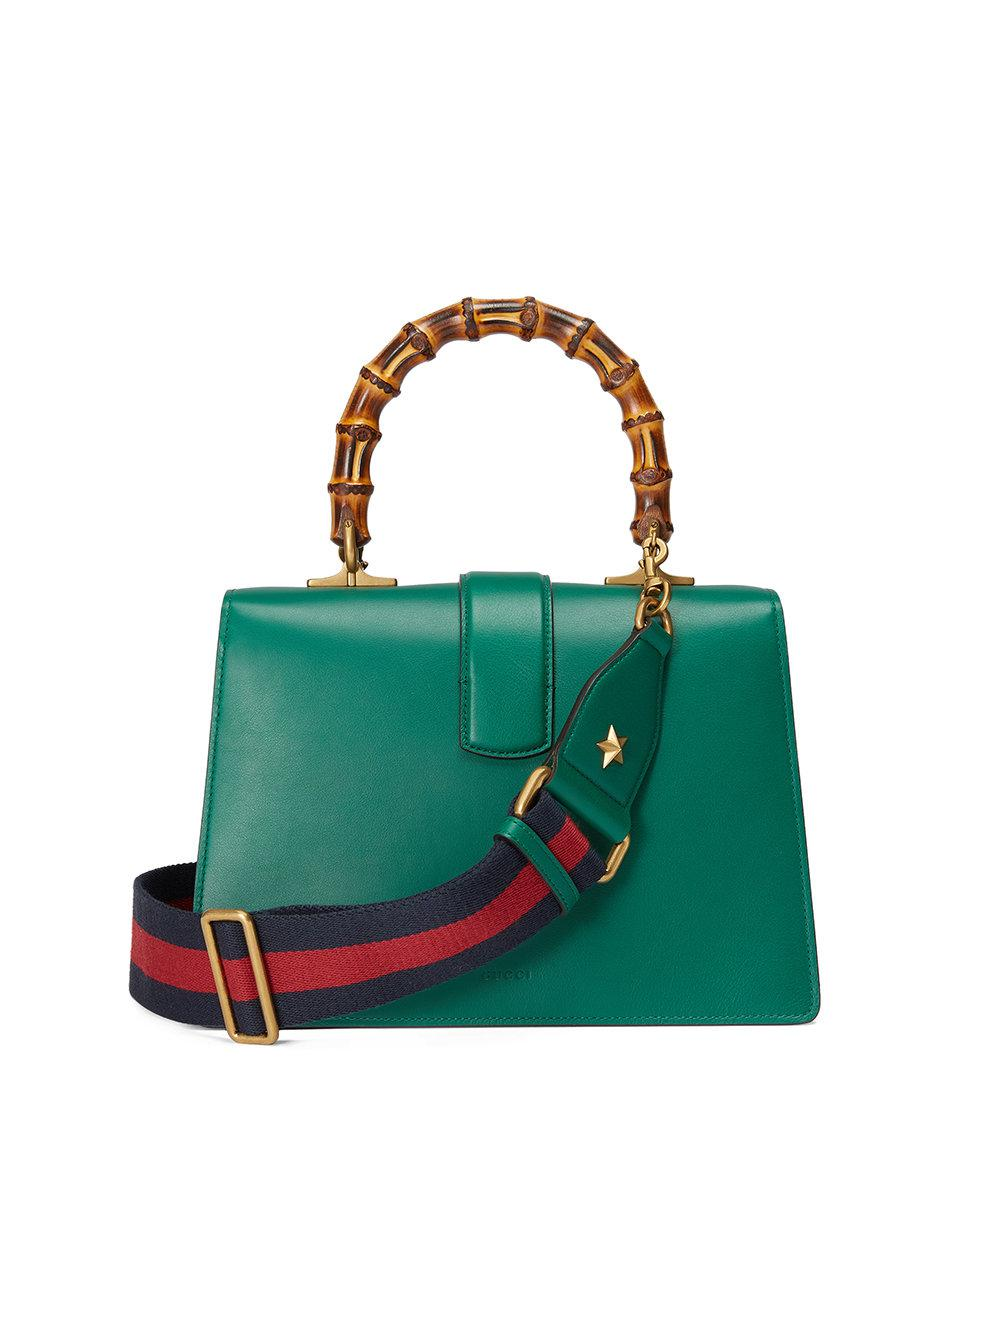 Dionysus leather top handle bag - Green Gucci 6Z8LUalJuP